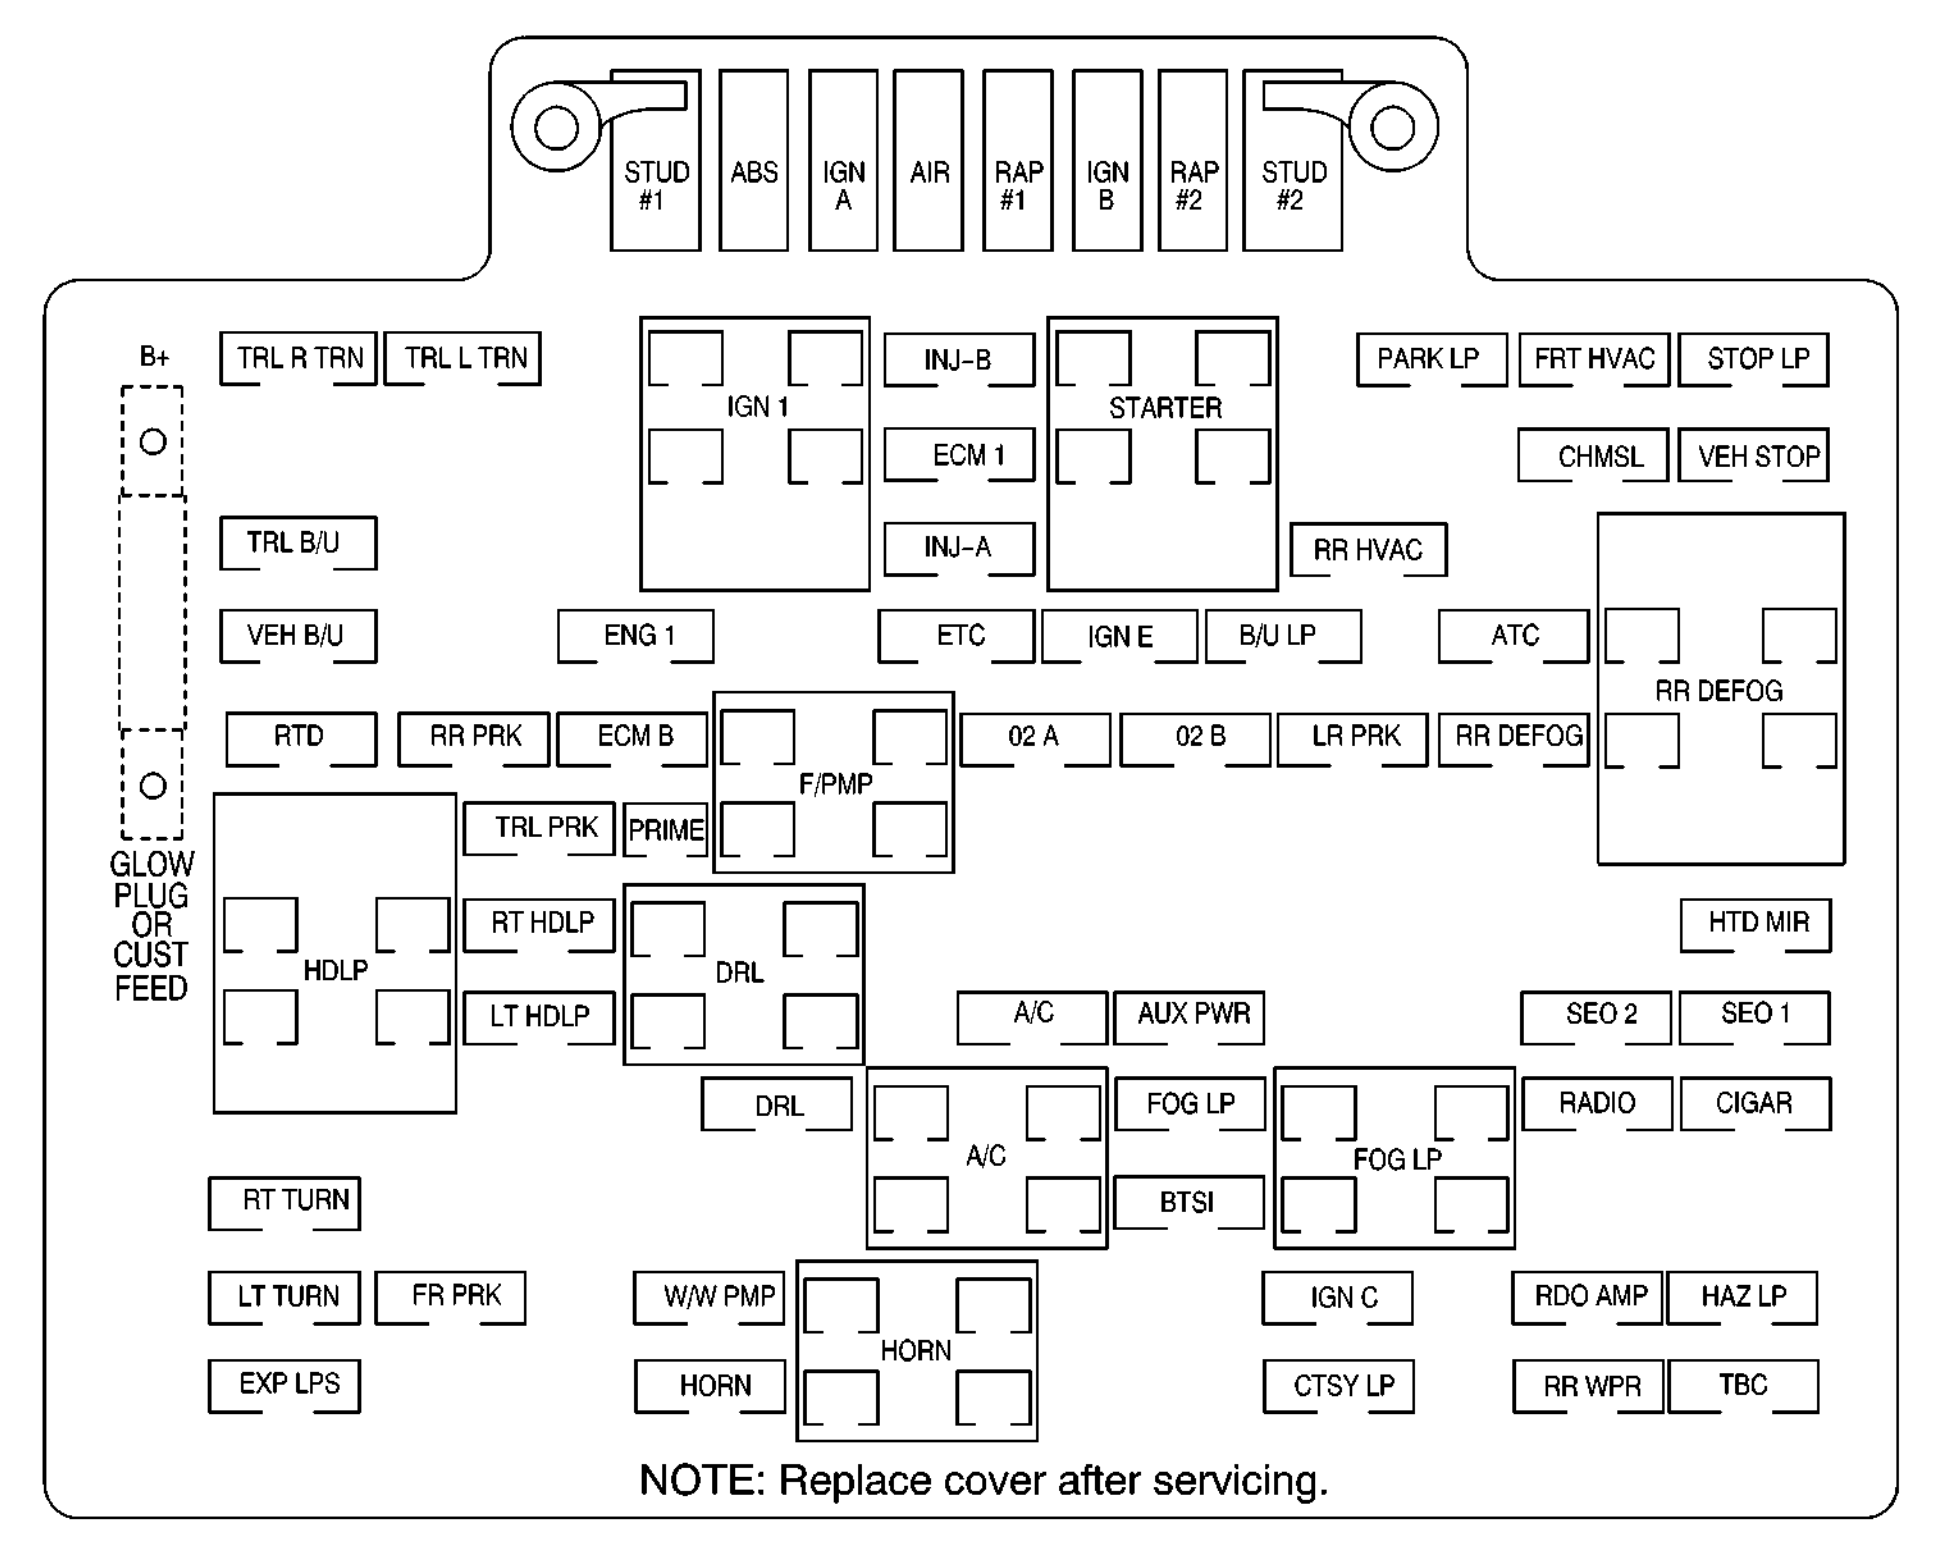 1999 Chevy C1500 Fuse Diagram Wiring Diagram Frankmotors Es